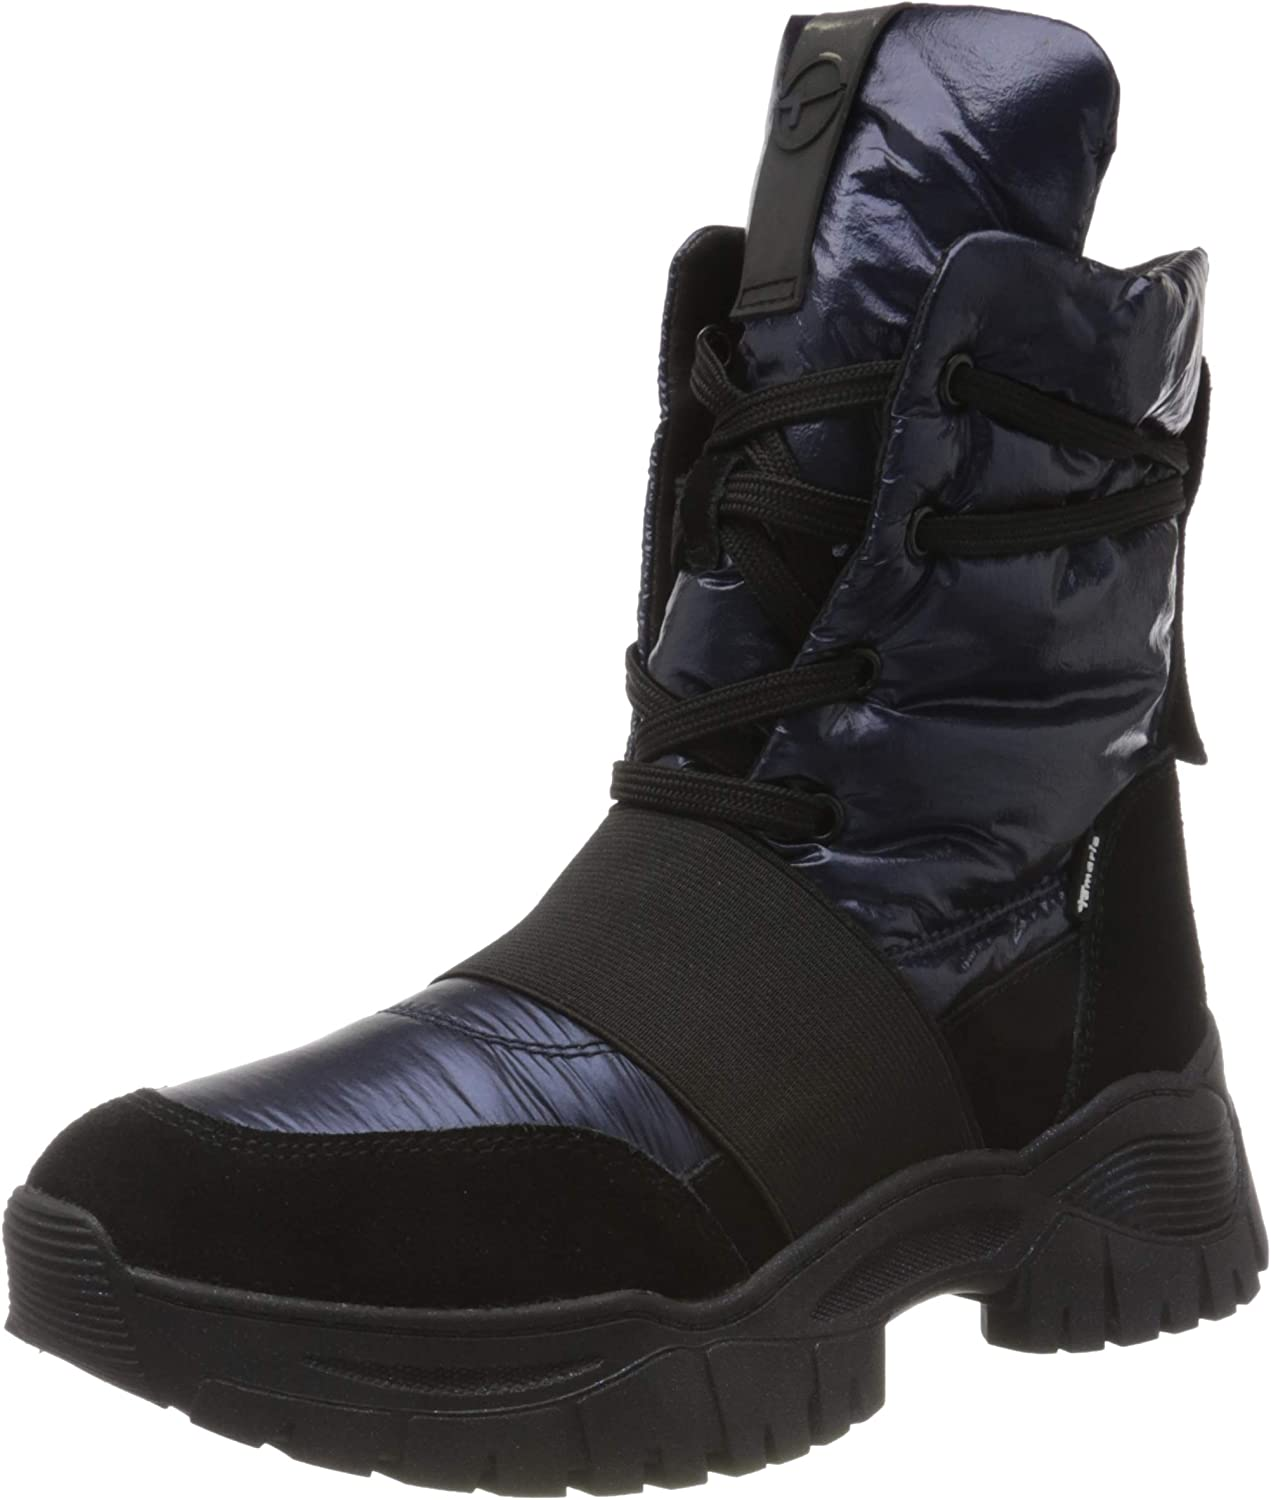 Tamaris Safety and trust Women's Bootie Sale item Boot Ankle